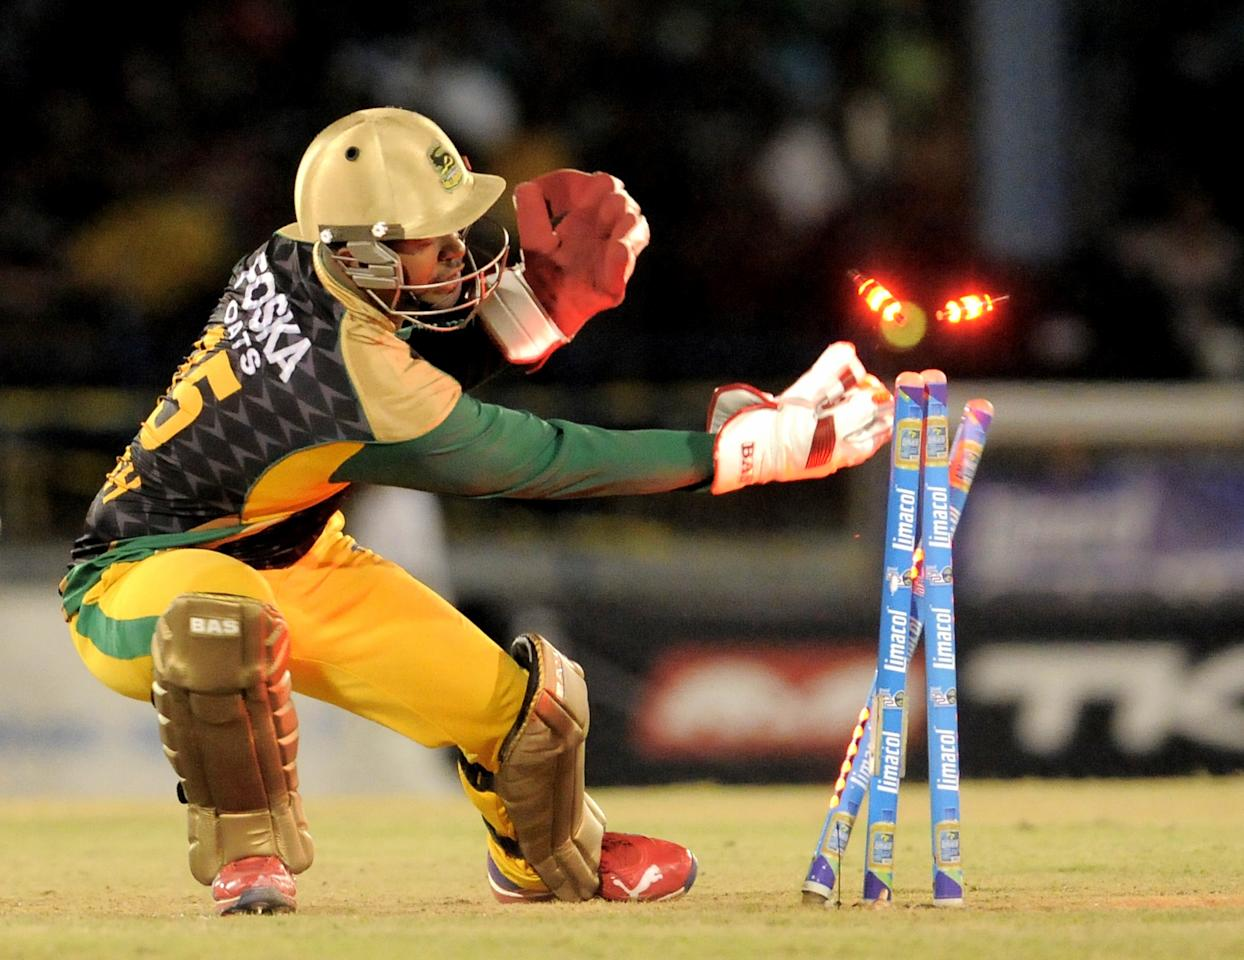 PORT OF SPAIN, TRINIDAD AND TOBAGO - AUGUST 24:  Keeper Carlton Baugh of Jamaica Tallawahs run out Guyana Amazon Warriors Sunil Narine during the Final of the Caribbean Premier League between Guyana Amazon Warriors v Jamaica Tallawahs at Queens Park Oval on August 24, 2013 in Port of Spain, Trinidad and Tobago. (Photo by Randy Brooks/Getty Images Latin America for CPL)